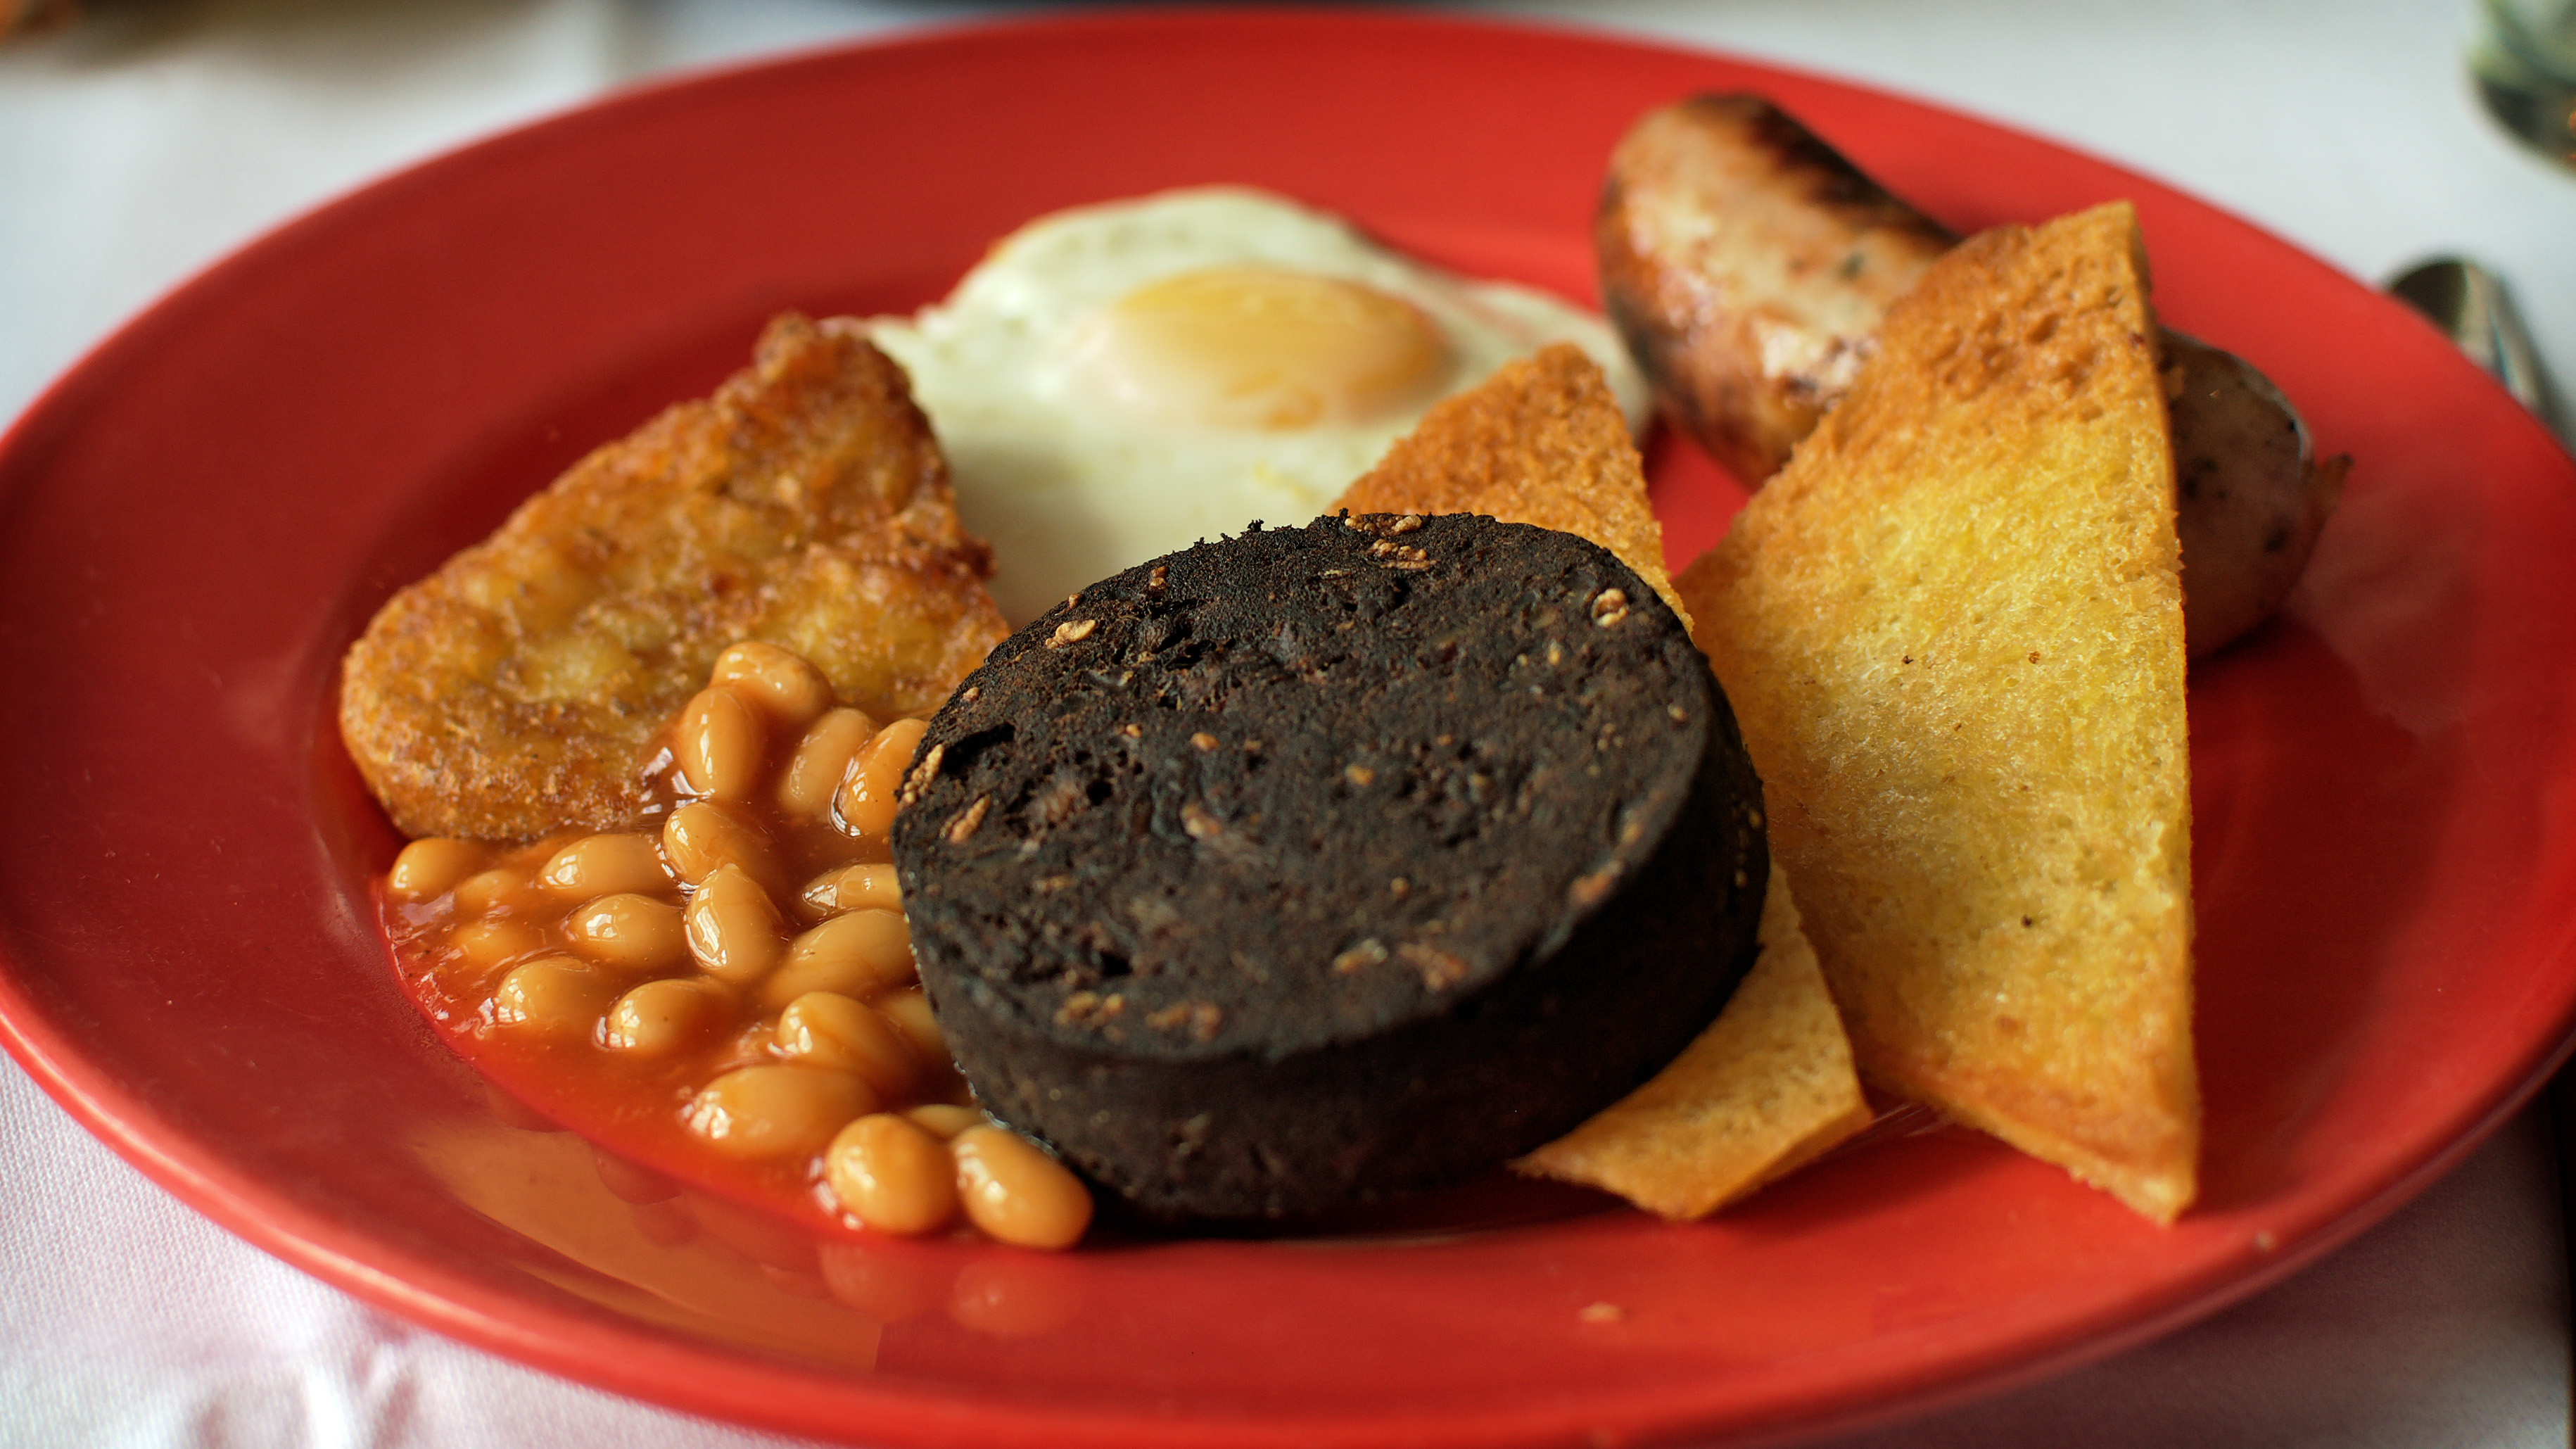 Black Pudding & how to avoid eating powdered blood  (3)